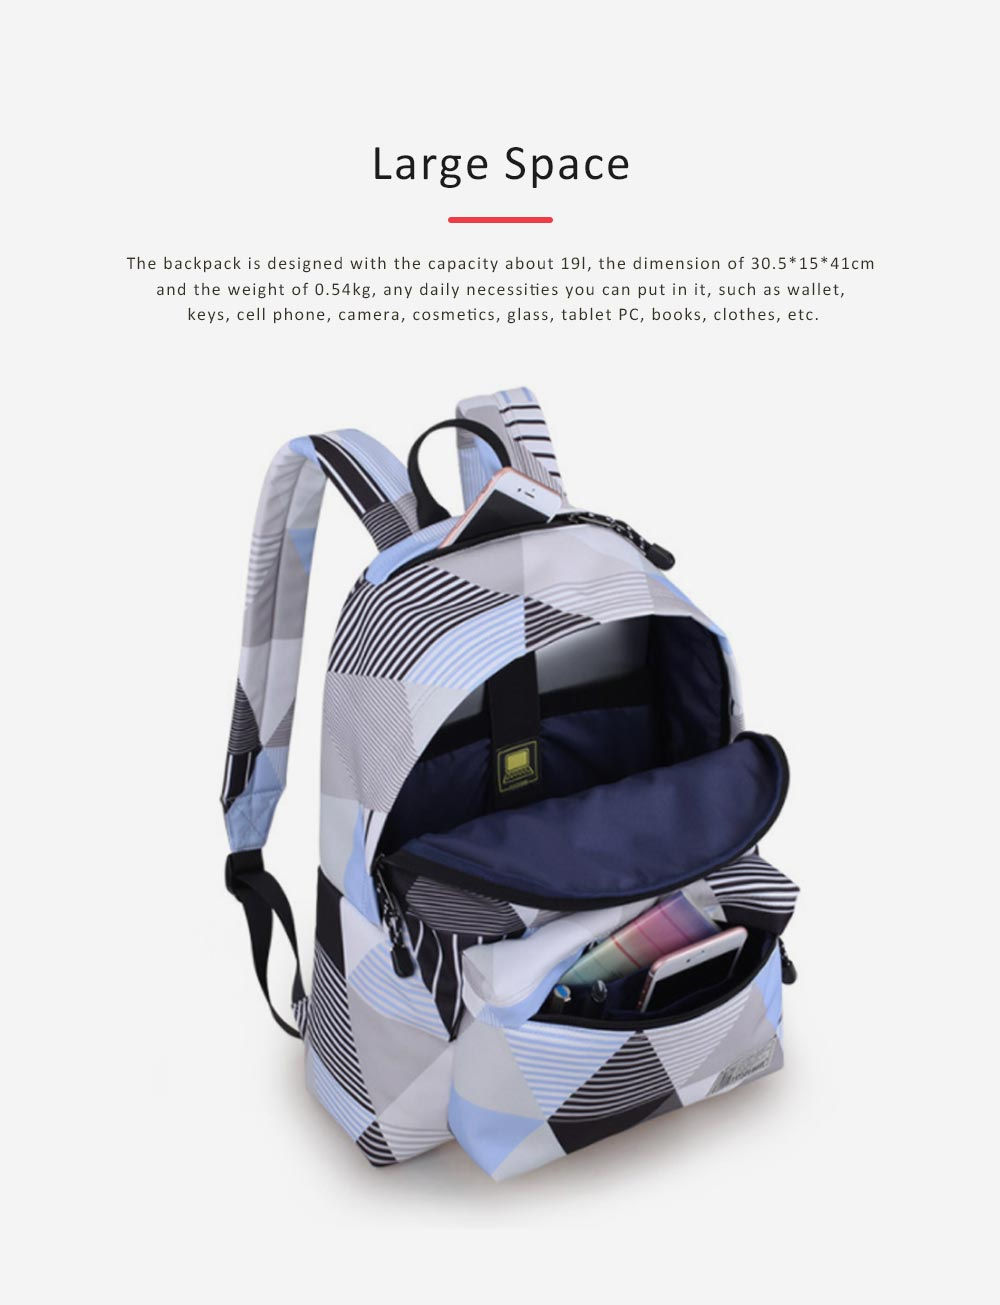 Geometric Figure Backpack for Students, Fashionable Large Capacity Casual Bag with Superior Zipper, Compatible with 10~14 inch Laptop 2